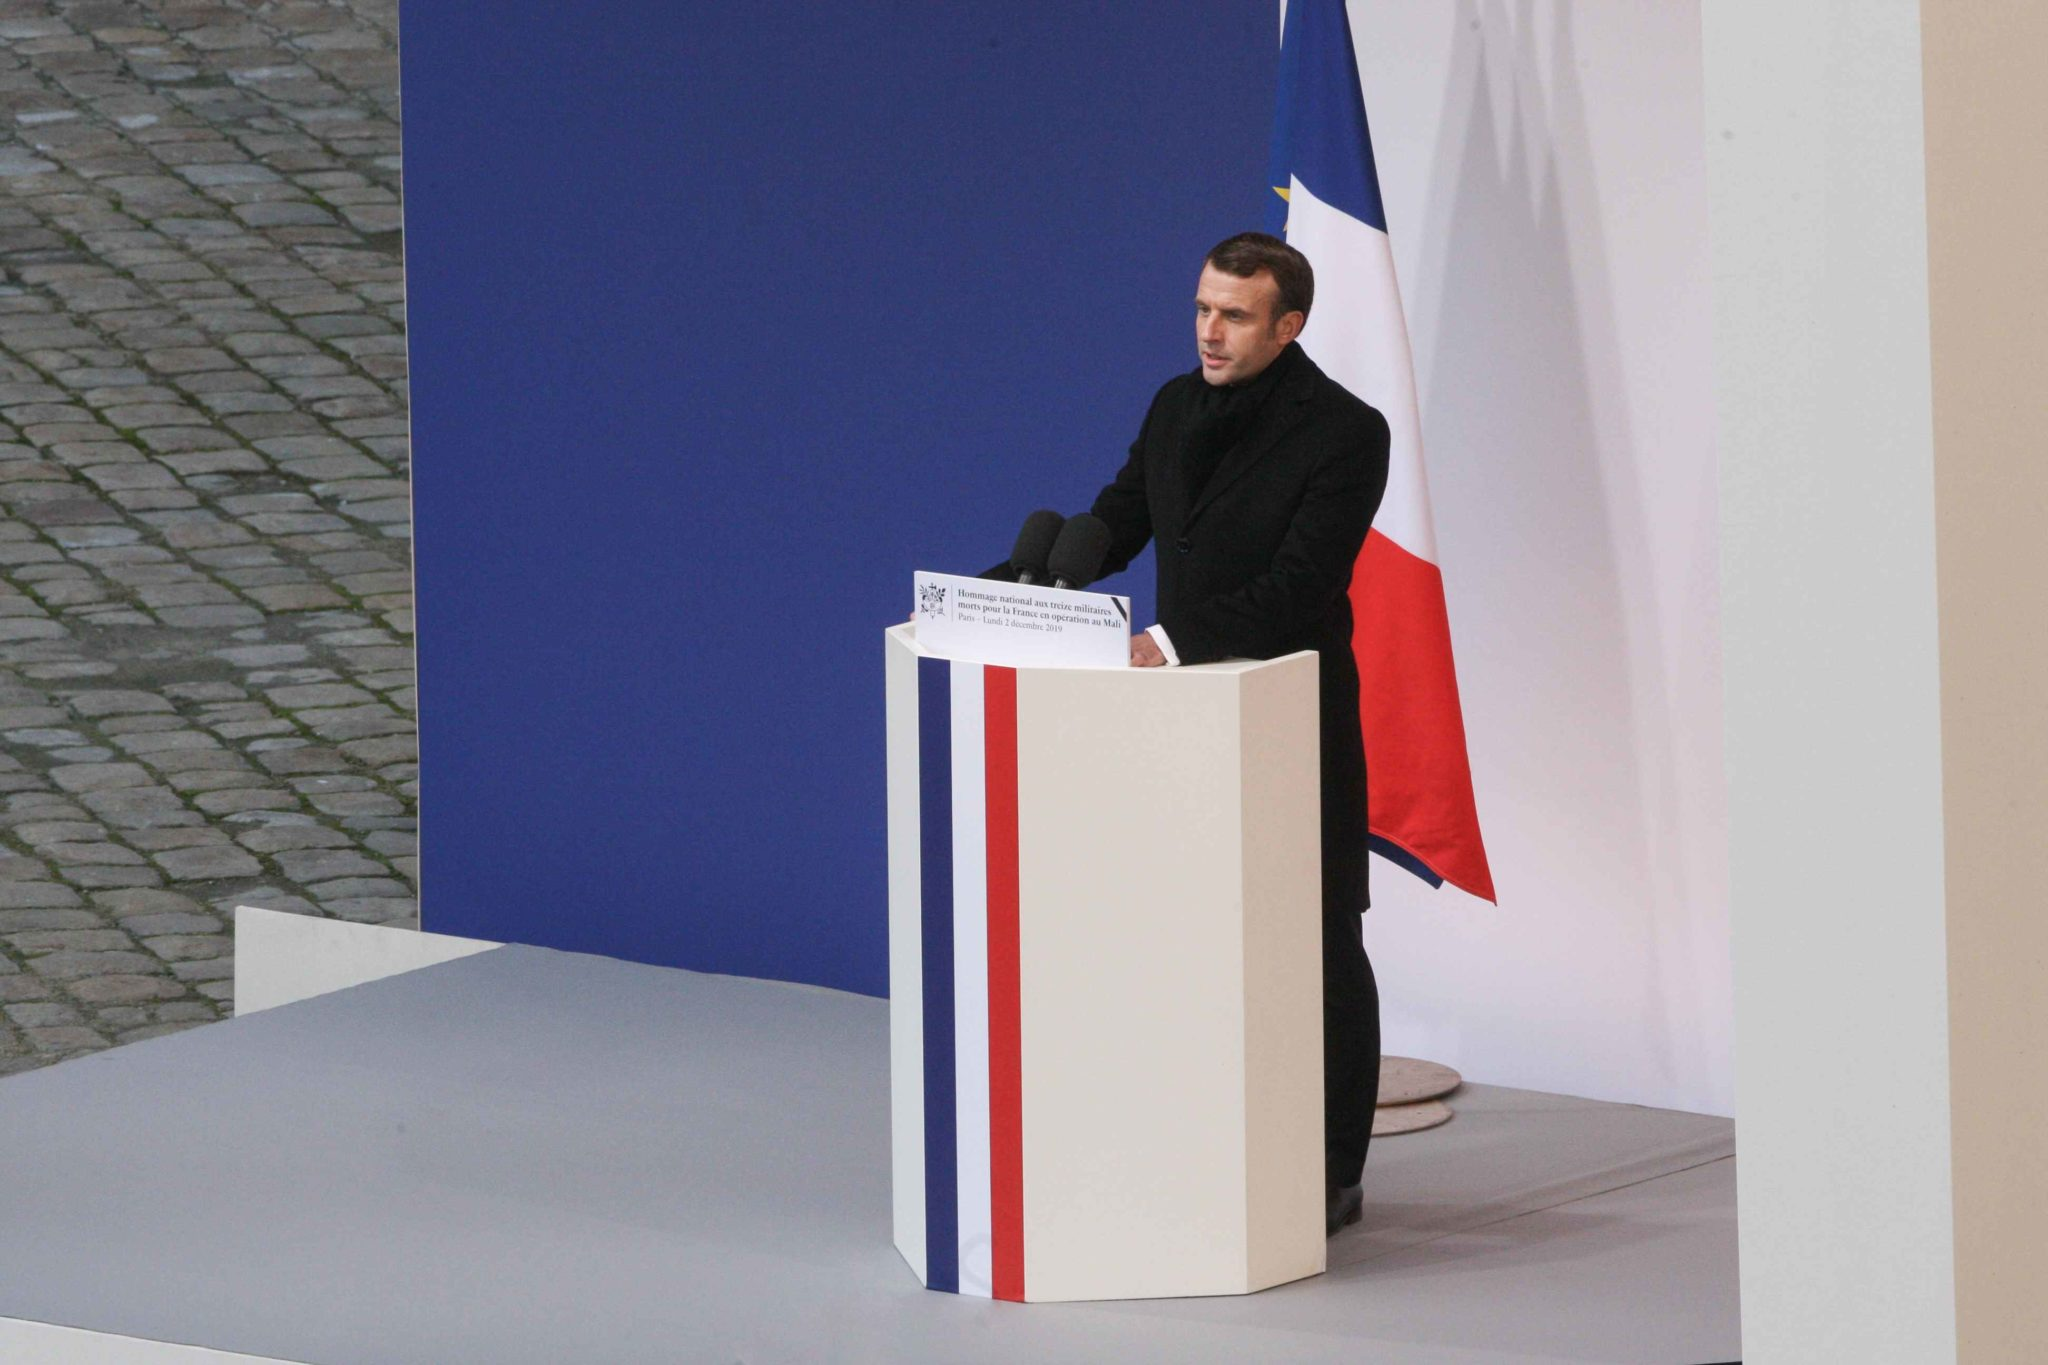 France's President Emmanuel Macron speaks during a tribute ceremony on December 2, 2019 at the Invalides monument, in Paris, for the 13 French soldiers killed in Mali. In its biggest military funeral in decades, France is honoring 13 soldiers killed when t